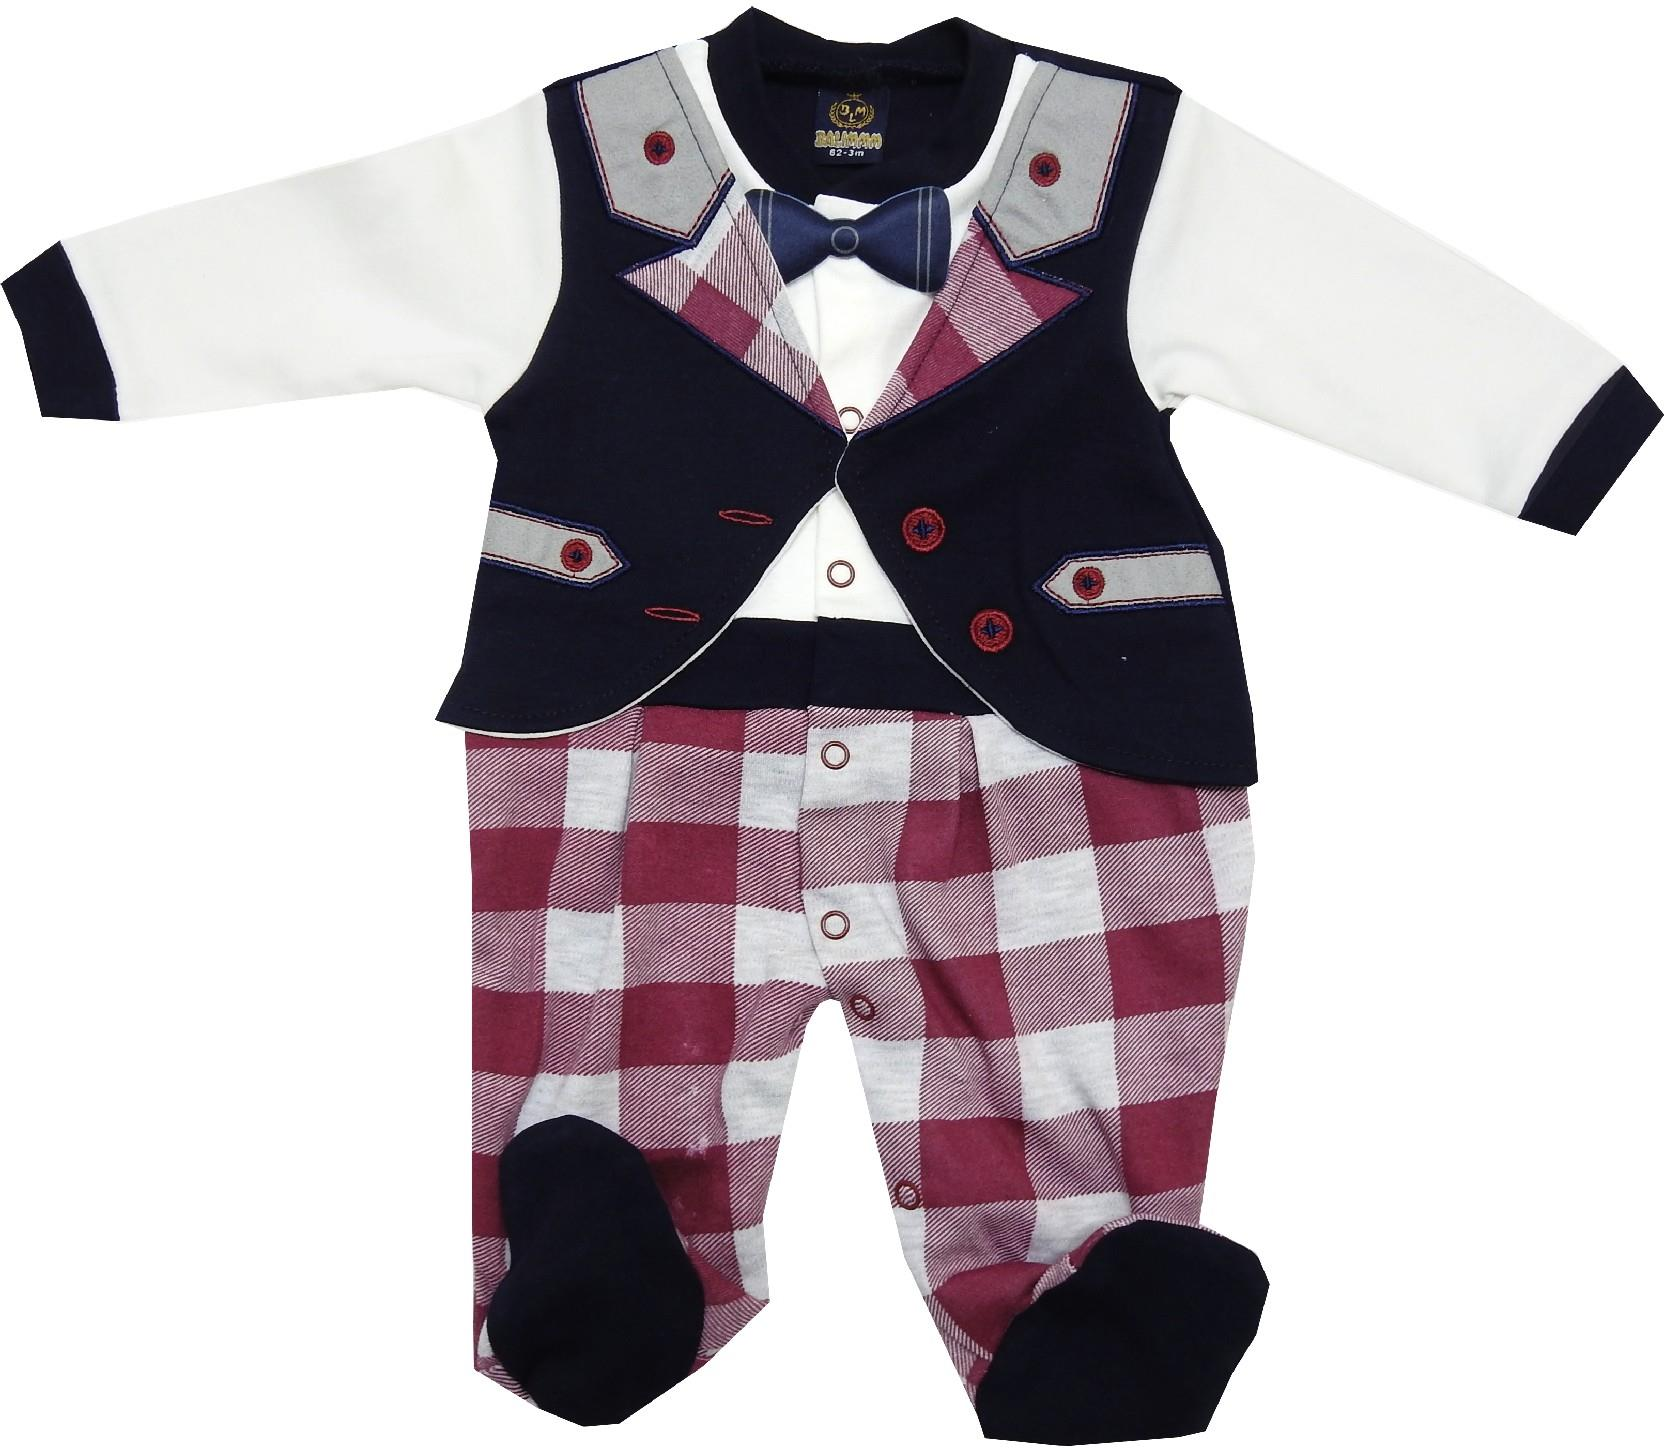 WHOLESALE CHECK FABRIC EMBROIDERY BODYSUIT FOR BOY (3-6-9 MONTH)